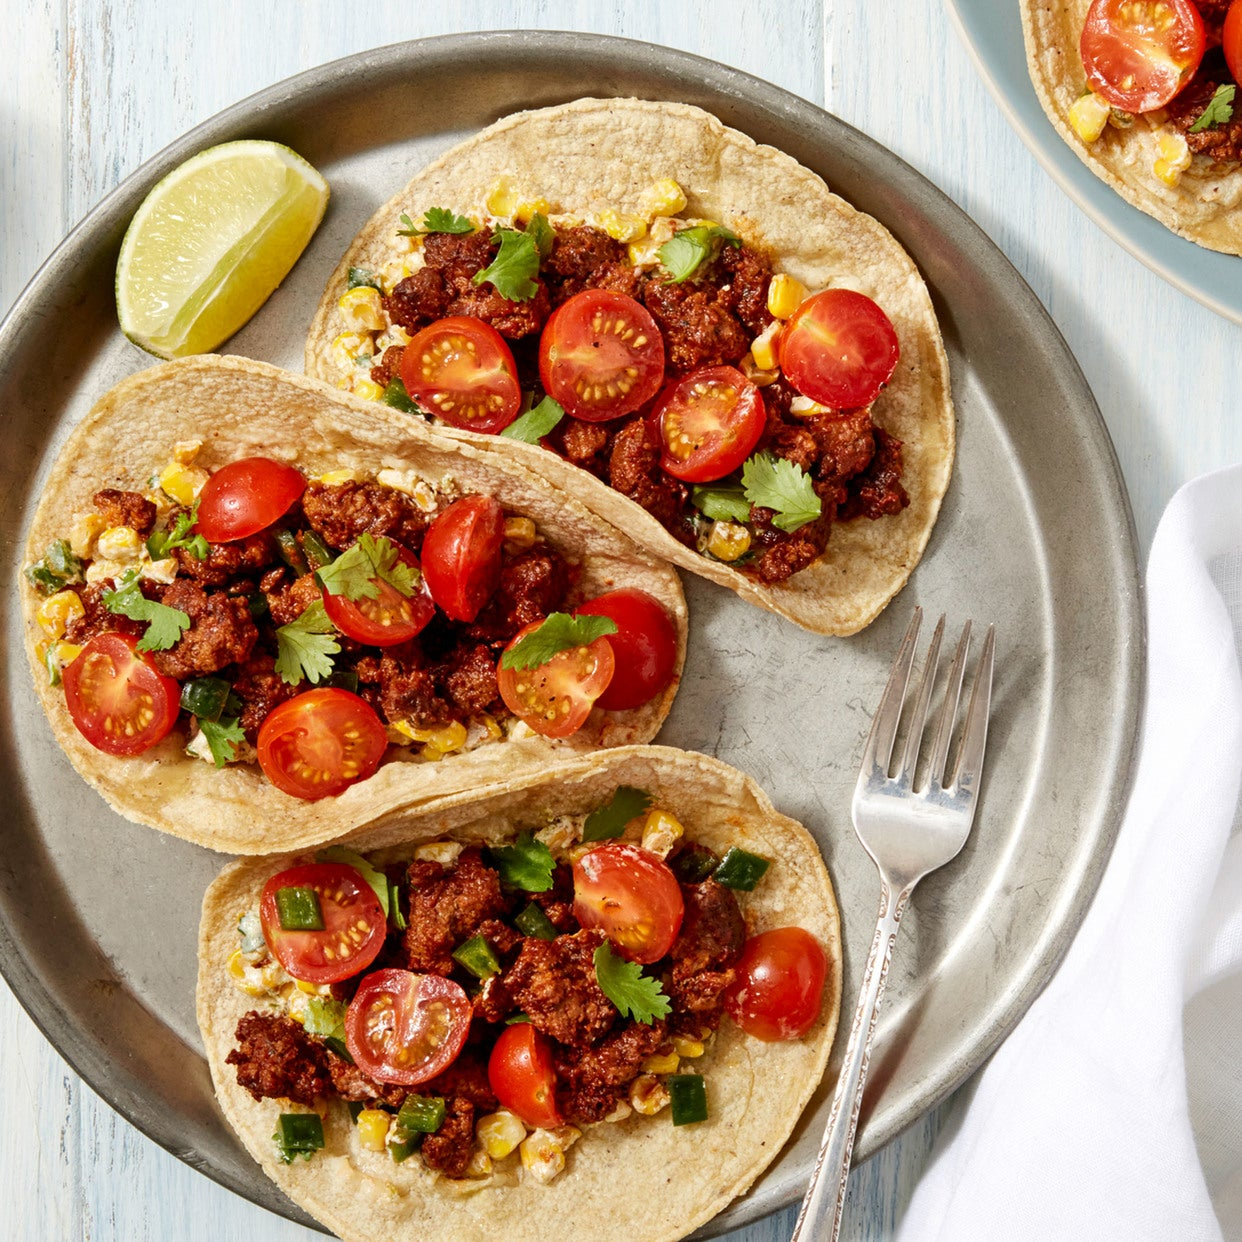 Spicy Beef Tacos with Cherry Tomato Salsa & Creamy Corn